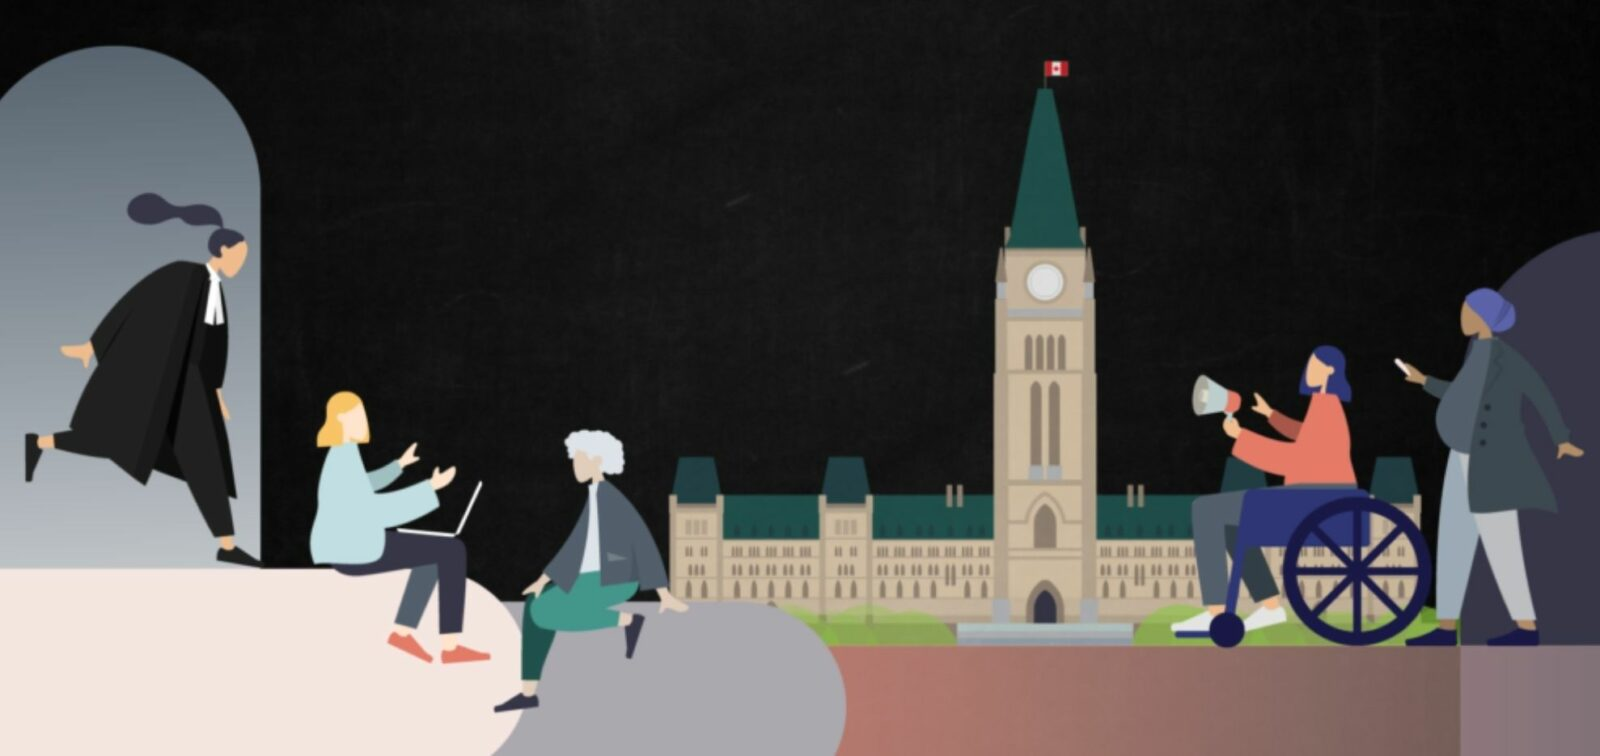 Illustration of a diverse group of women in front of parlimatent hill.